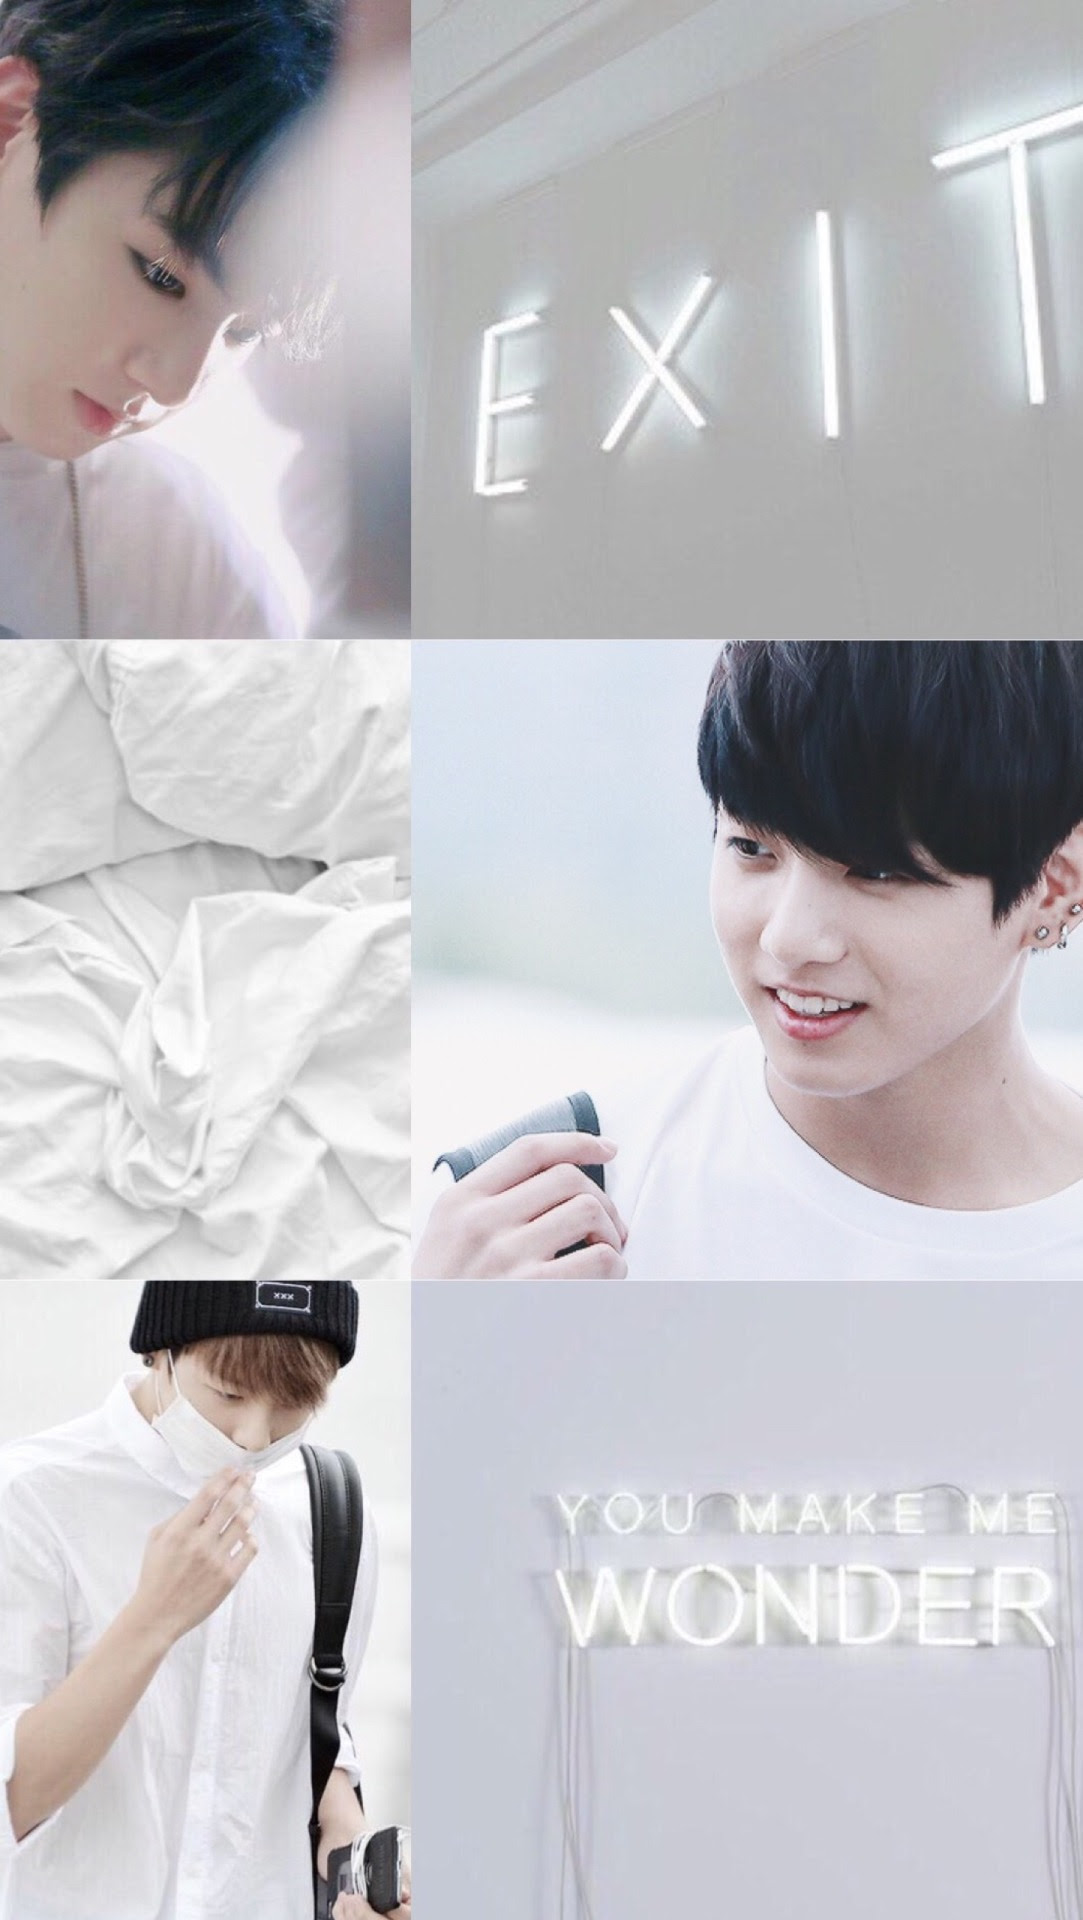 Hd Jungkook Wallpaper Aesthetic Wallpaper Bergerak